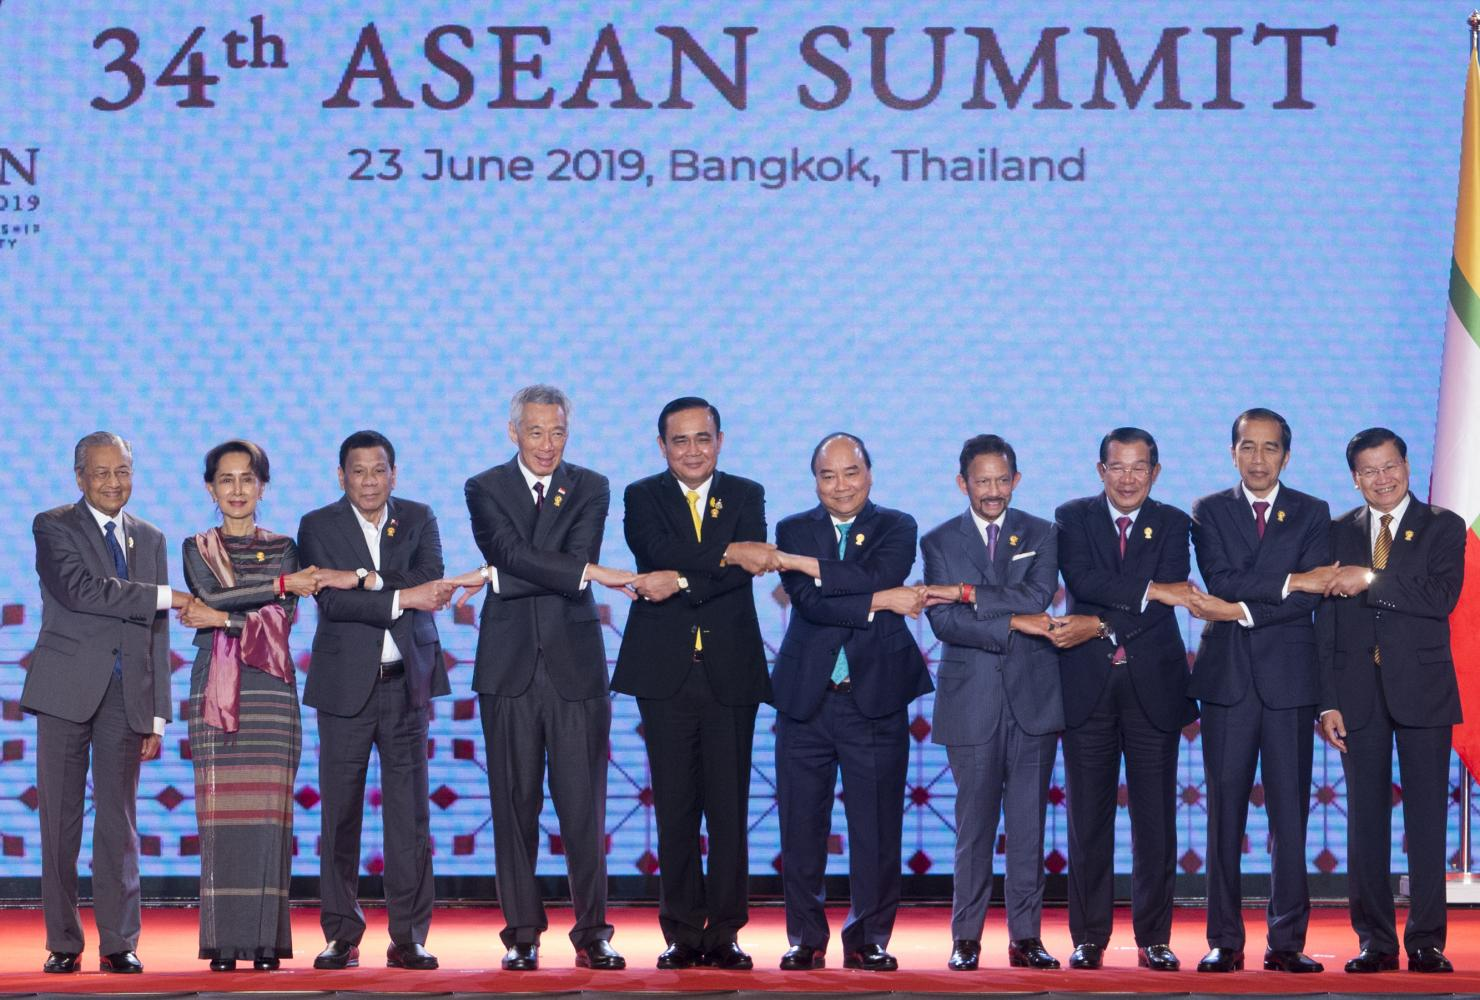 Southeast Asian leaders shake hands on stage at the start of the last day of the 34th Asean Summit at the Athenee Hotel in Bangkok on Sunday. (Photo by Pattarapong Chatpattarasill)